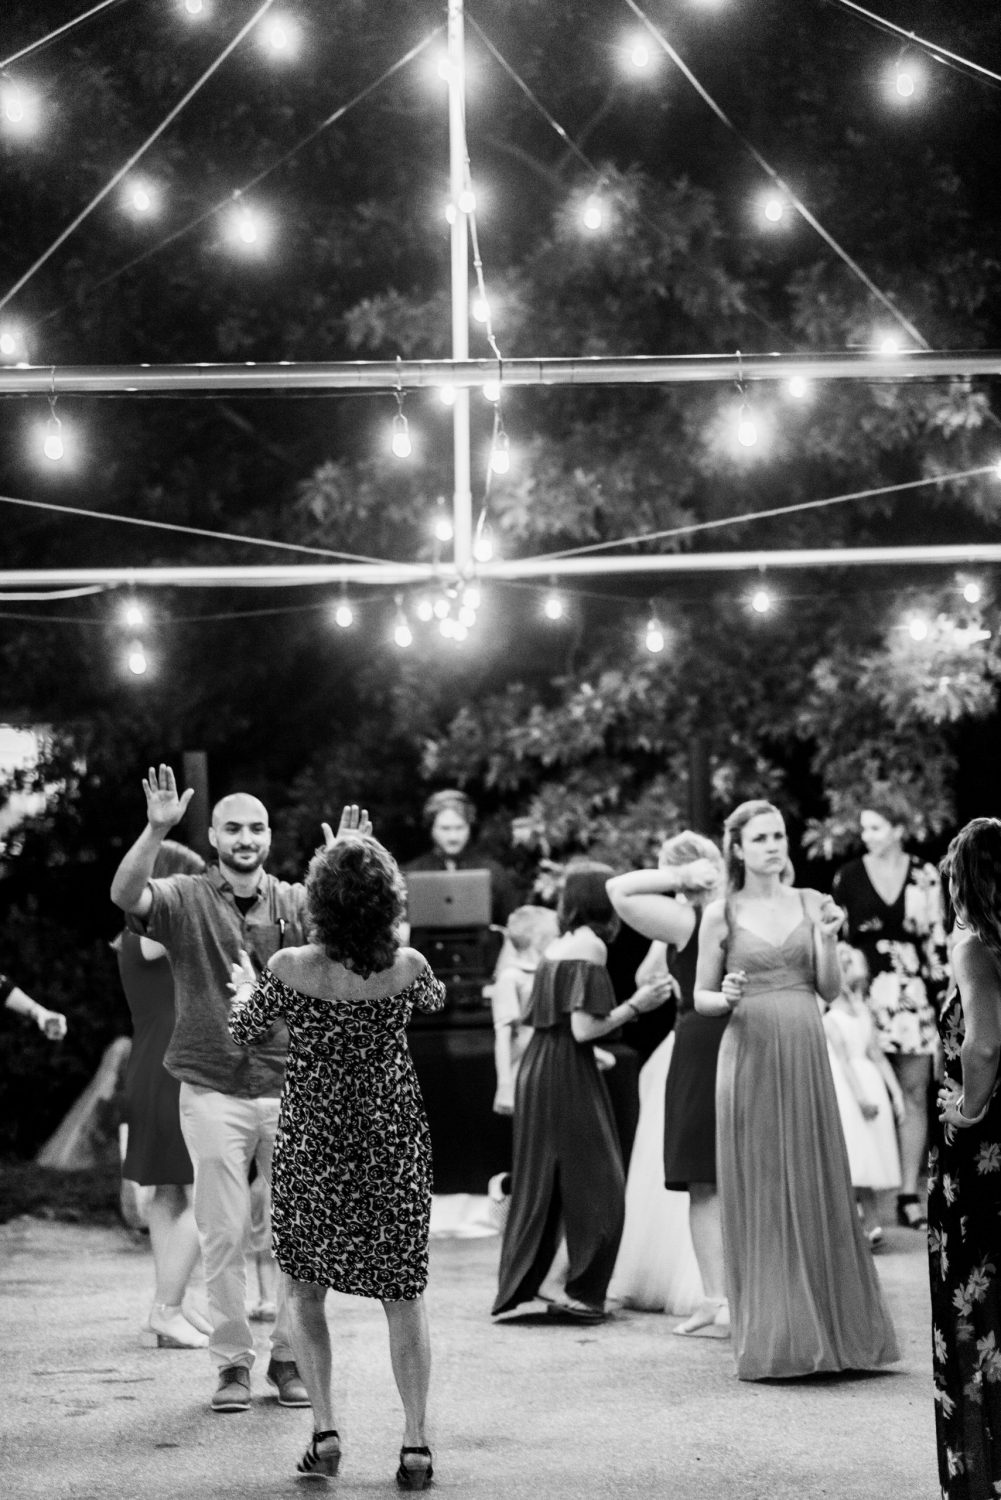 Colterris Winery Wedding | Photos by Amanda Matilda Photography